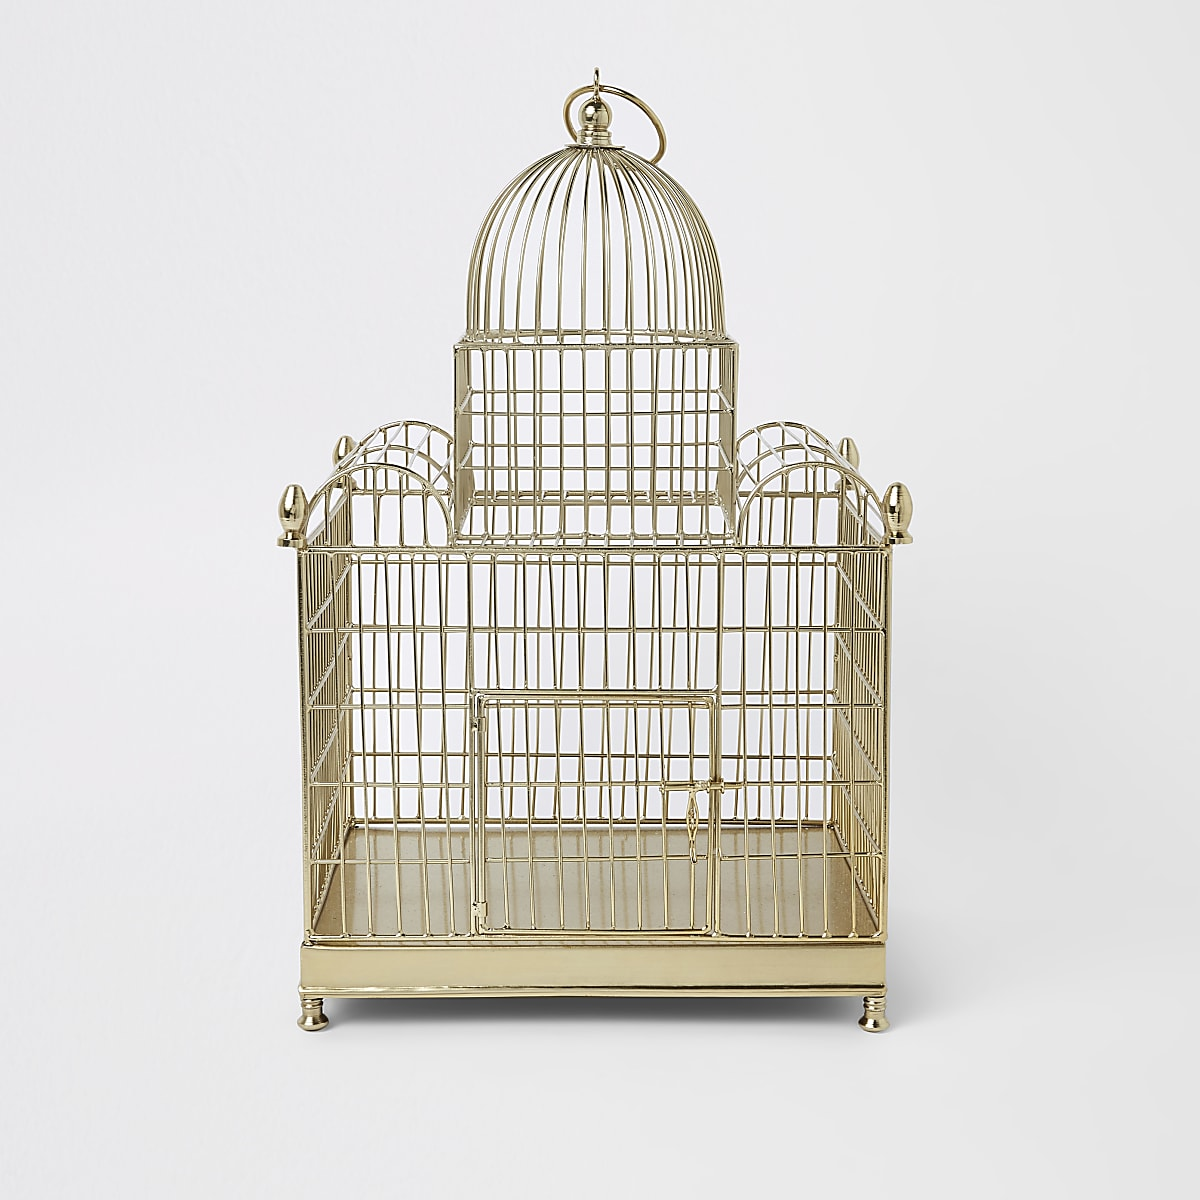 Decorative birdcage